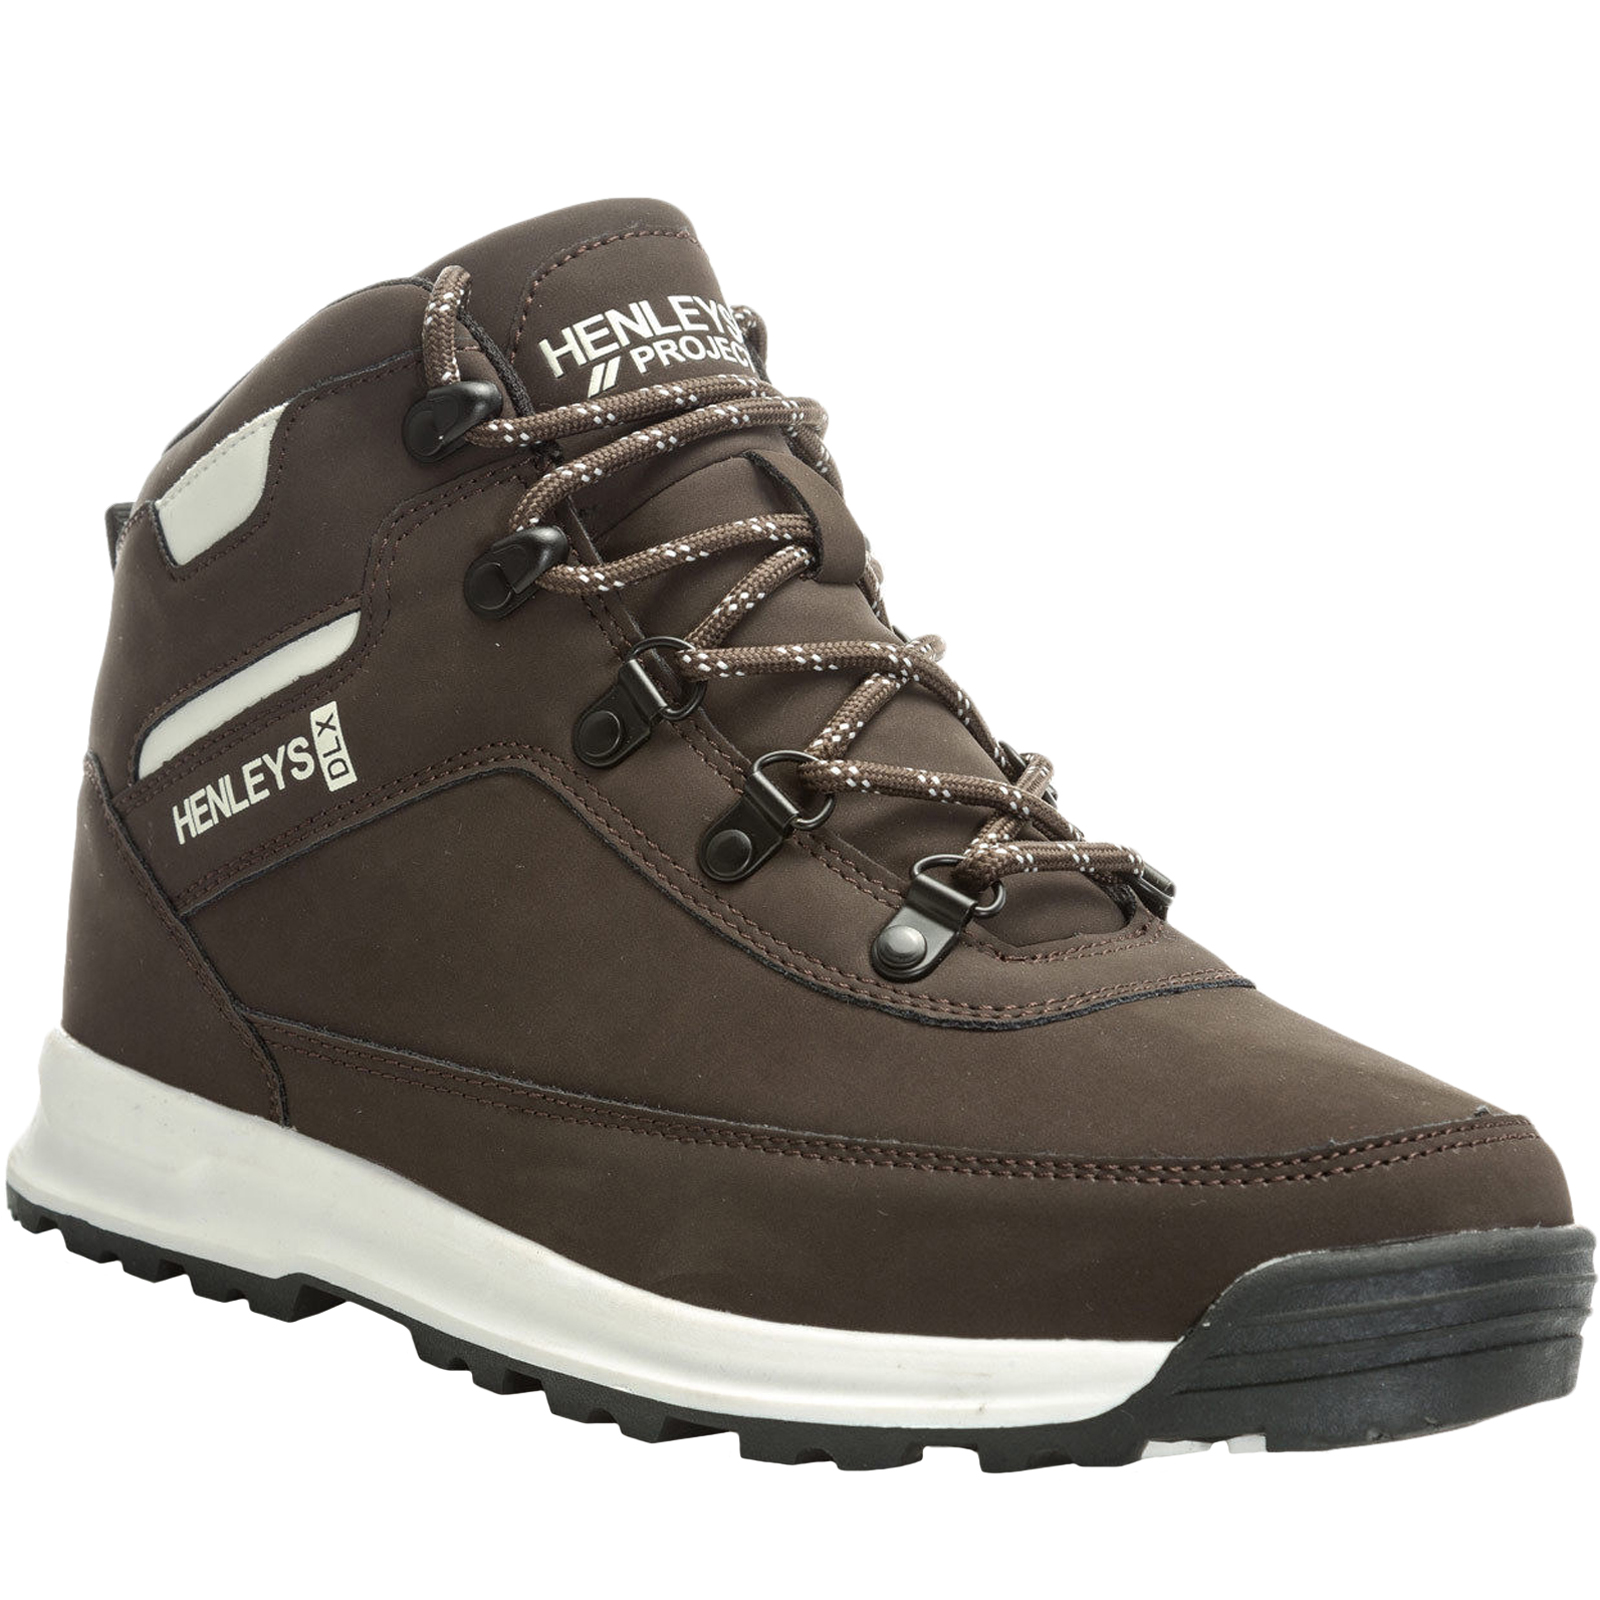 Henleys-Mens-Travis-Lace-Up-Casual-High-Top-Outdoor-Hiking-Walking-Boots-Shoes thumbnail 8